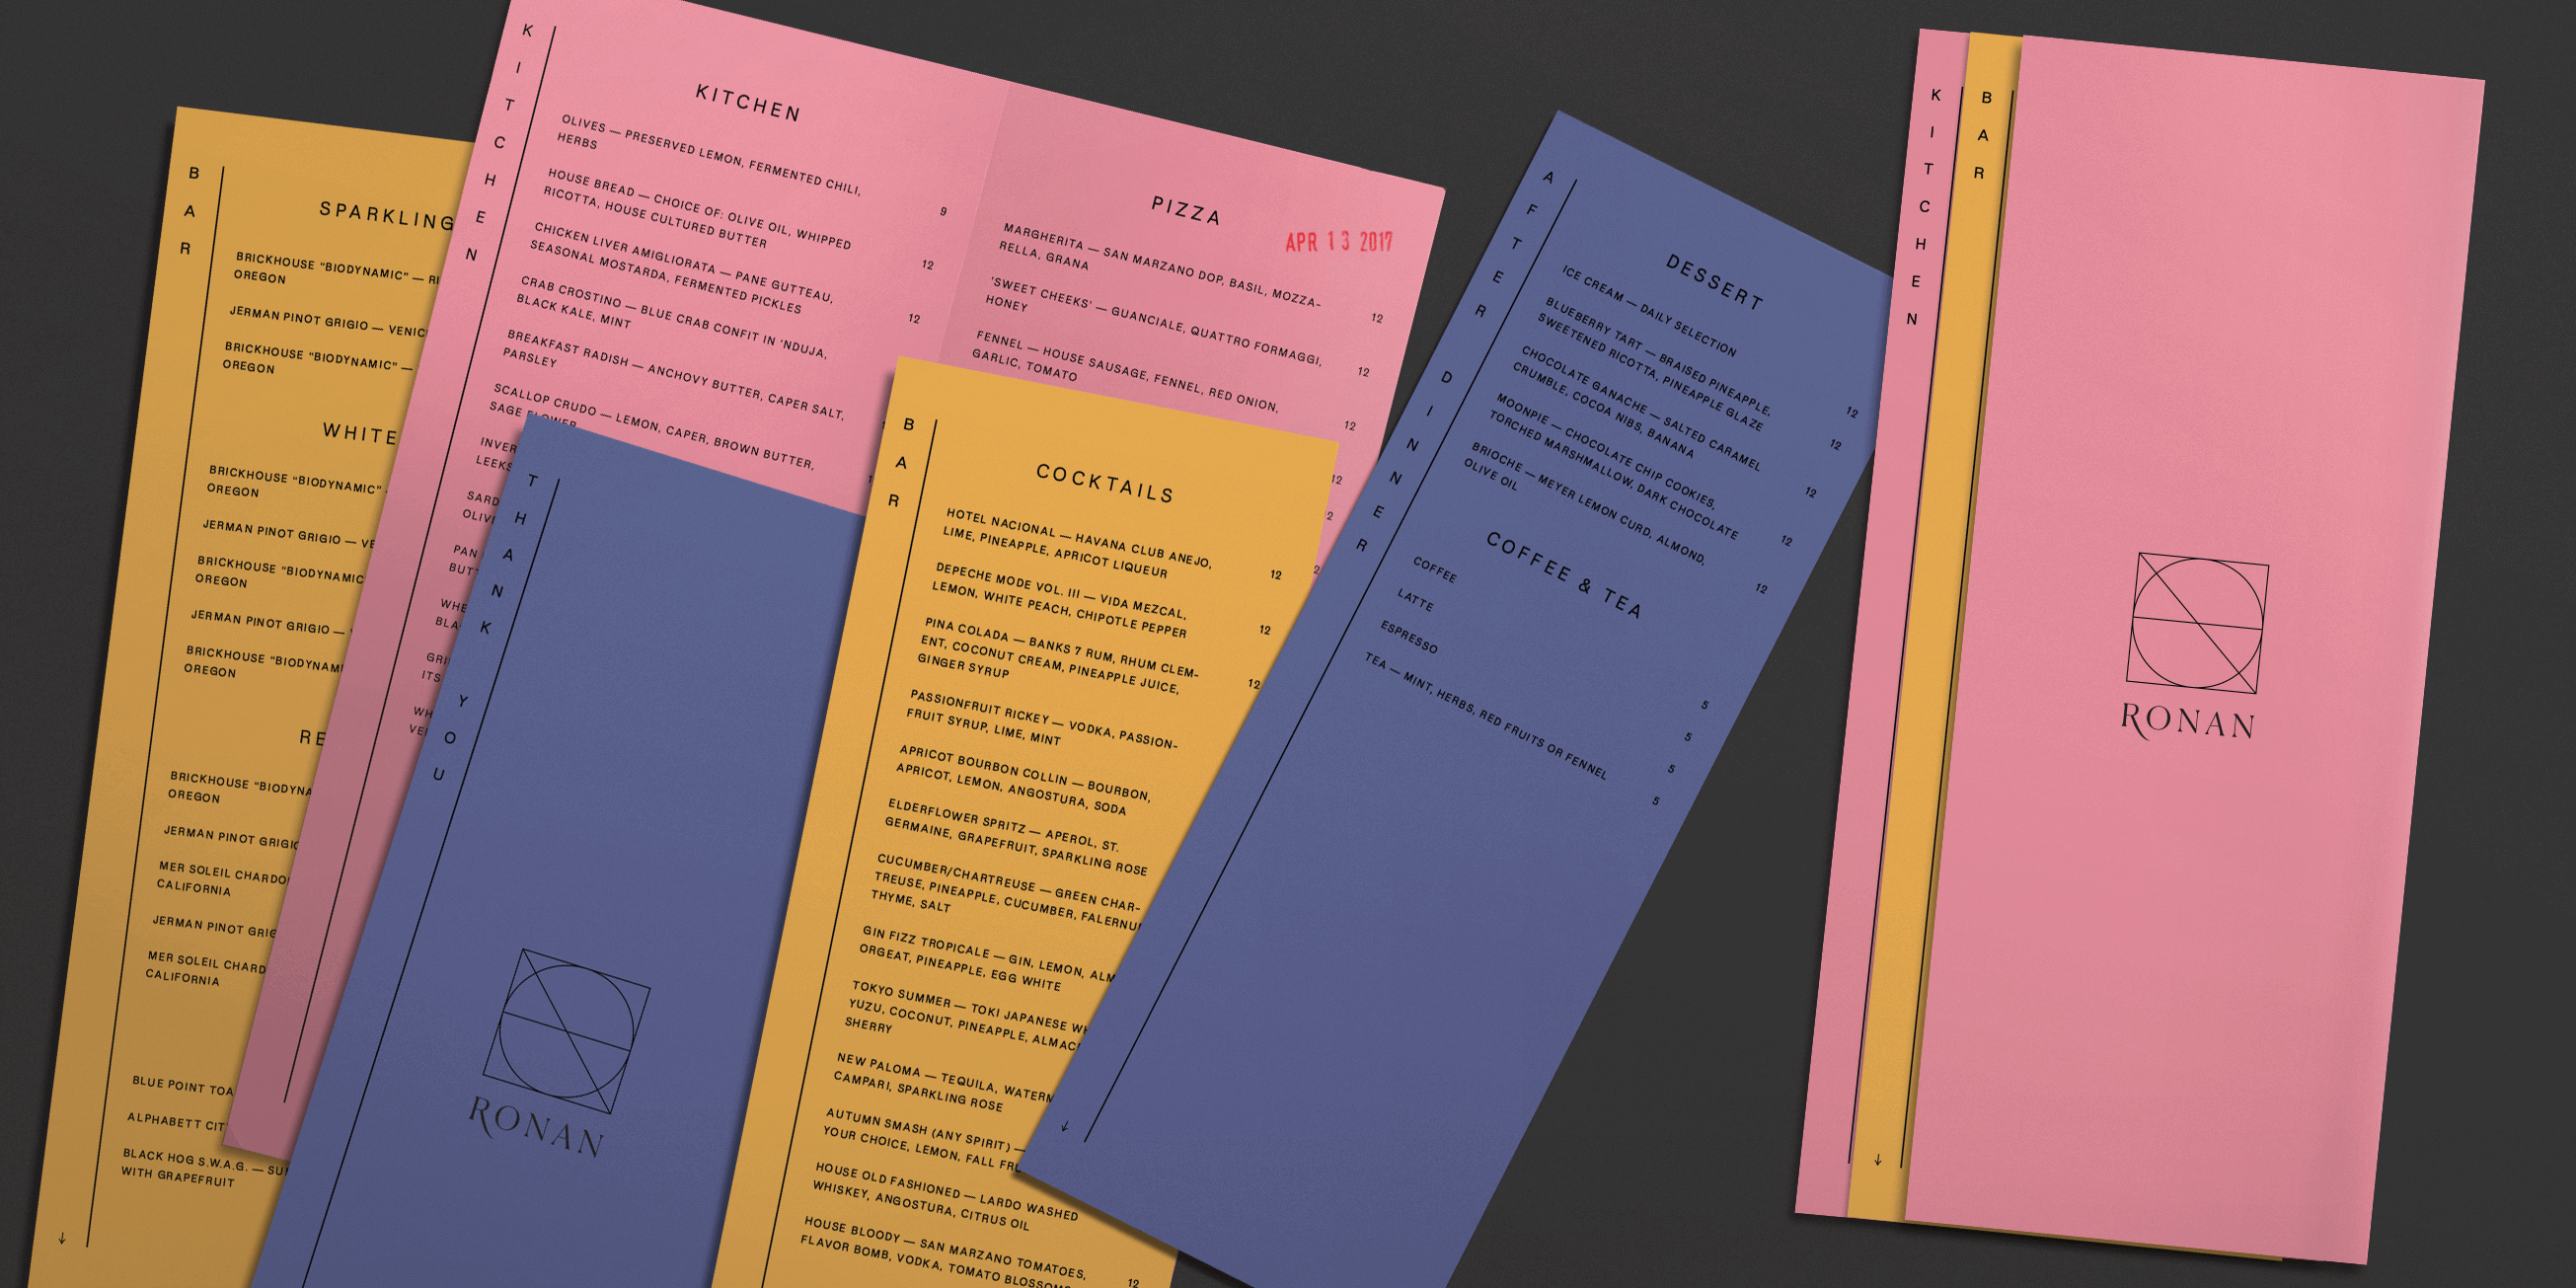 Spread of the menu sheets